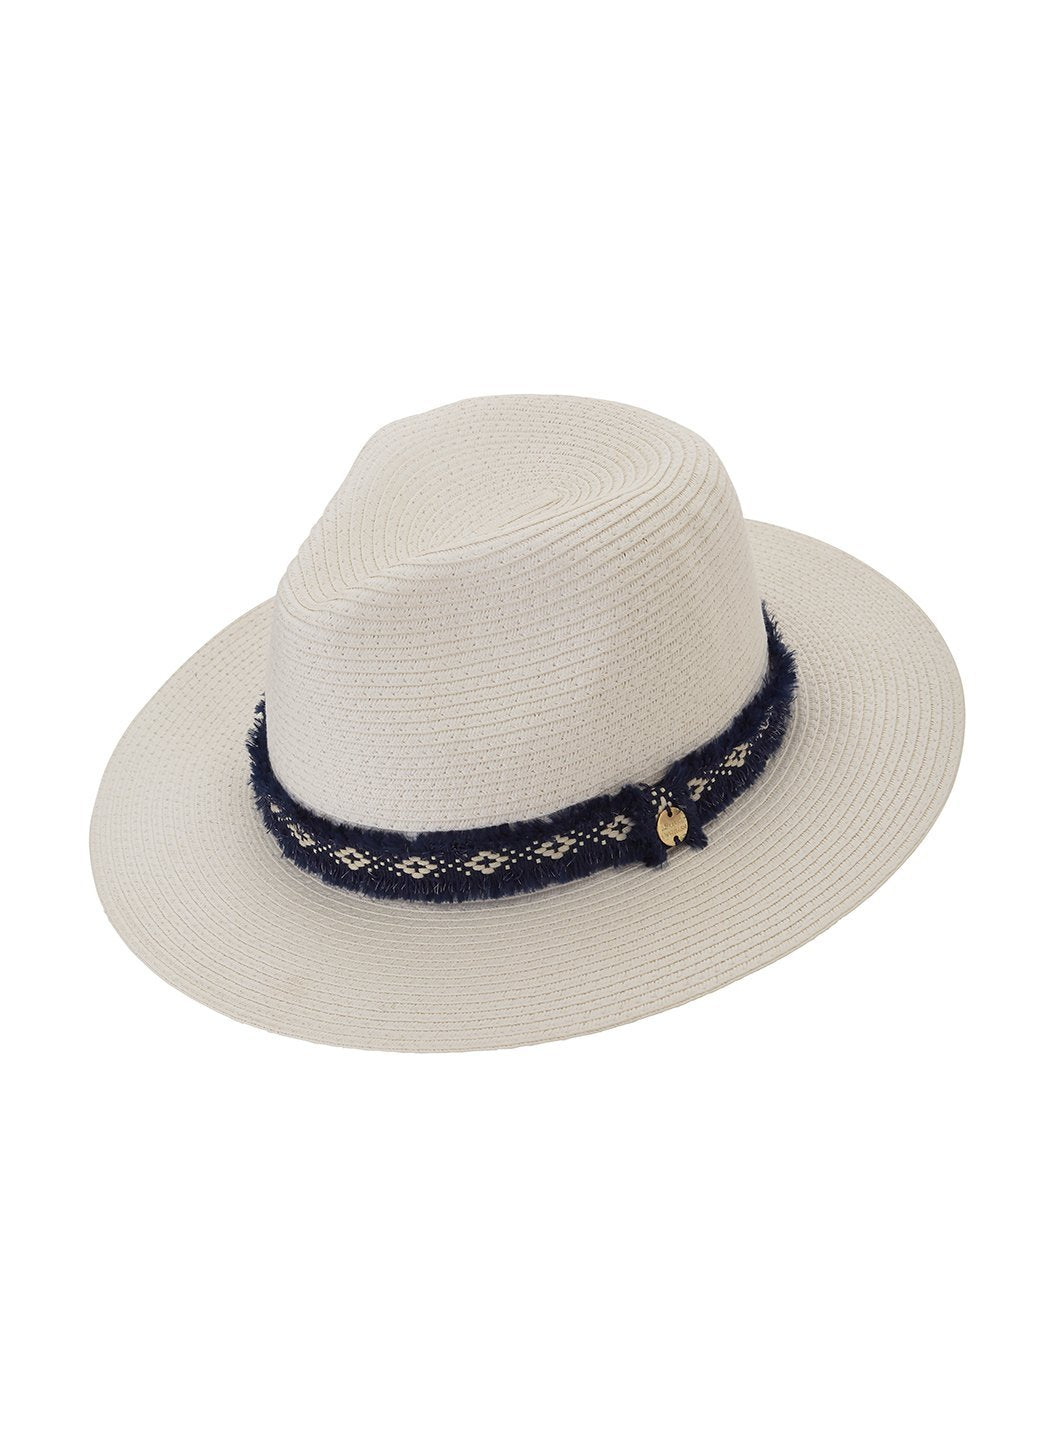 fedora hat white navy 2019